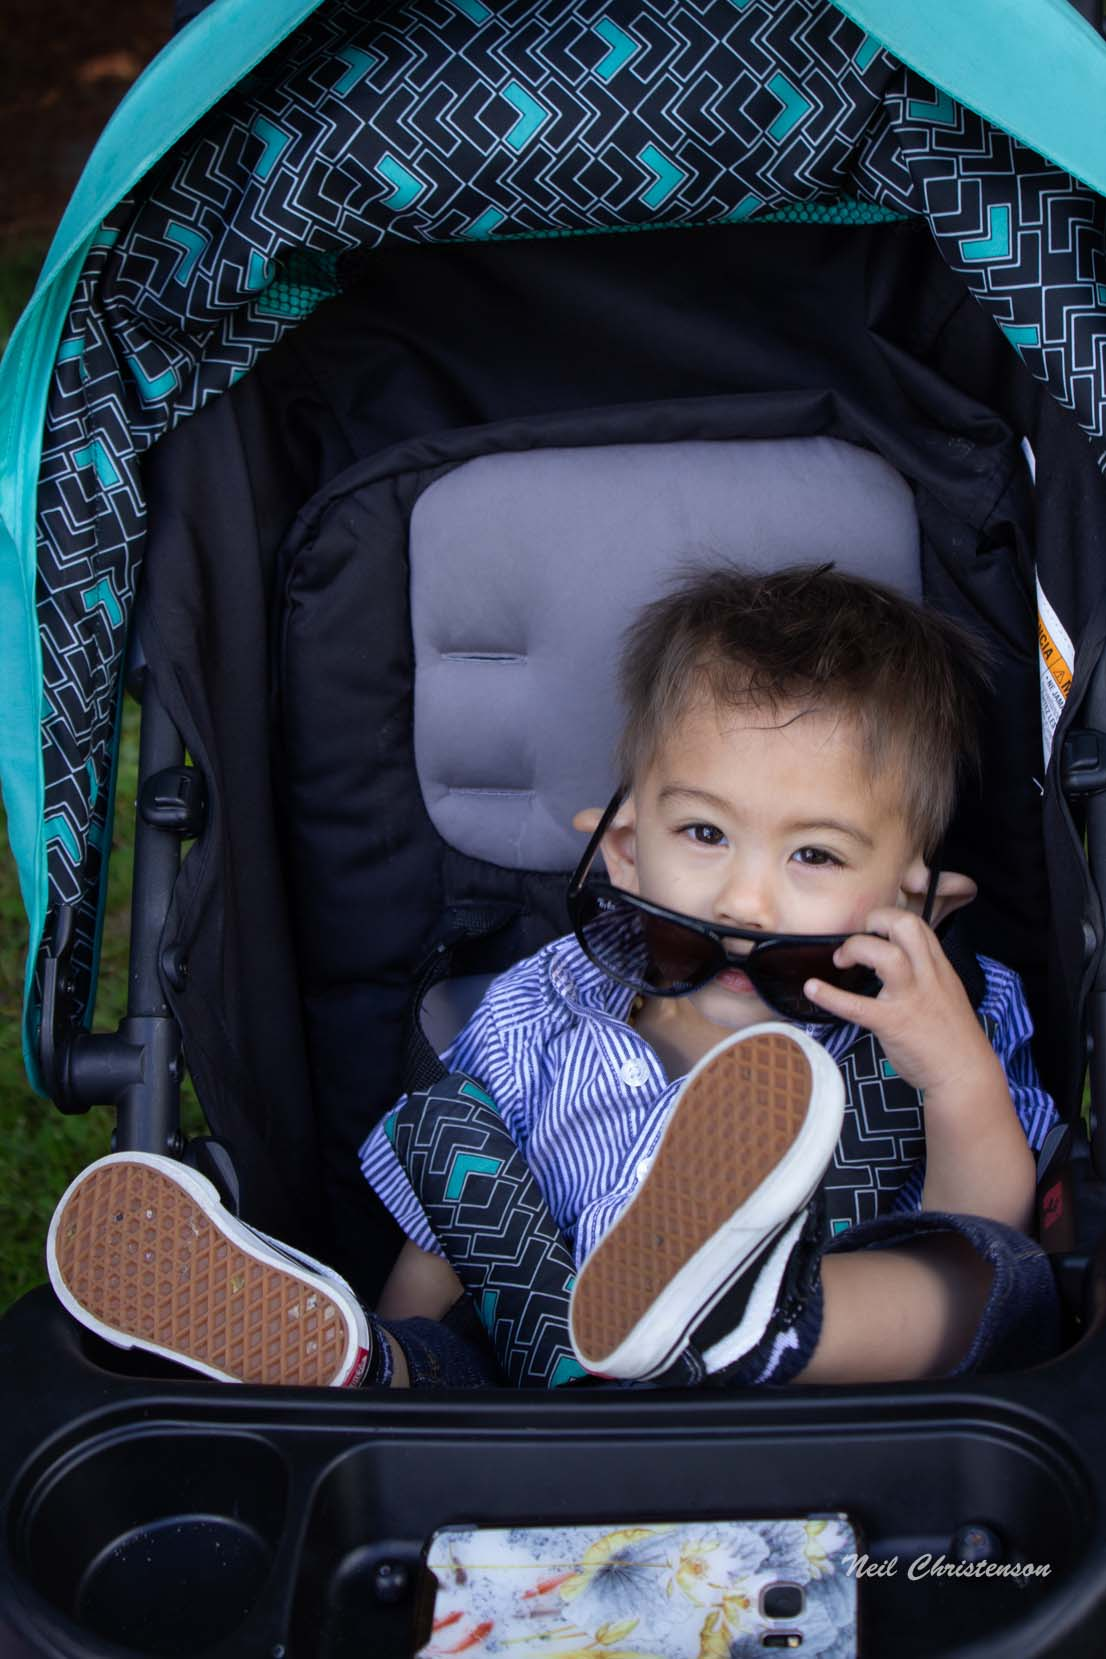 A toddler pulling down his sunglasses while sitting in a stroller.